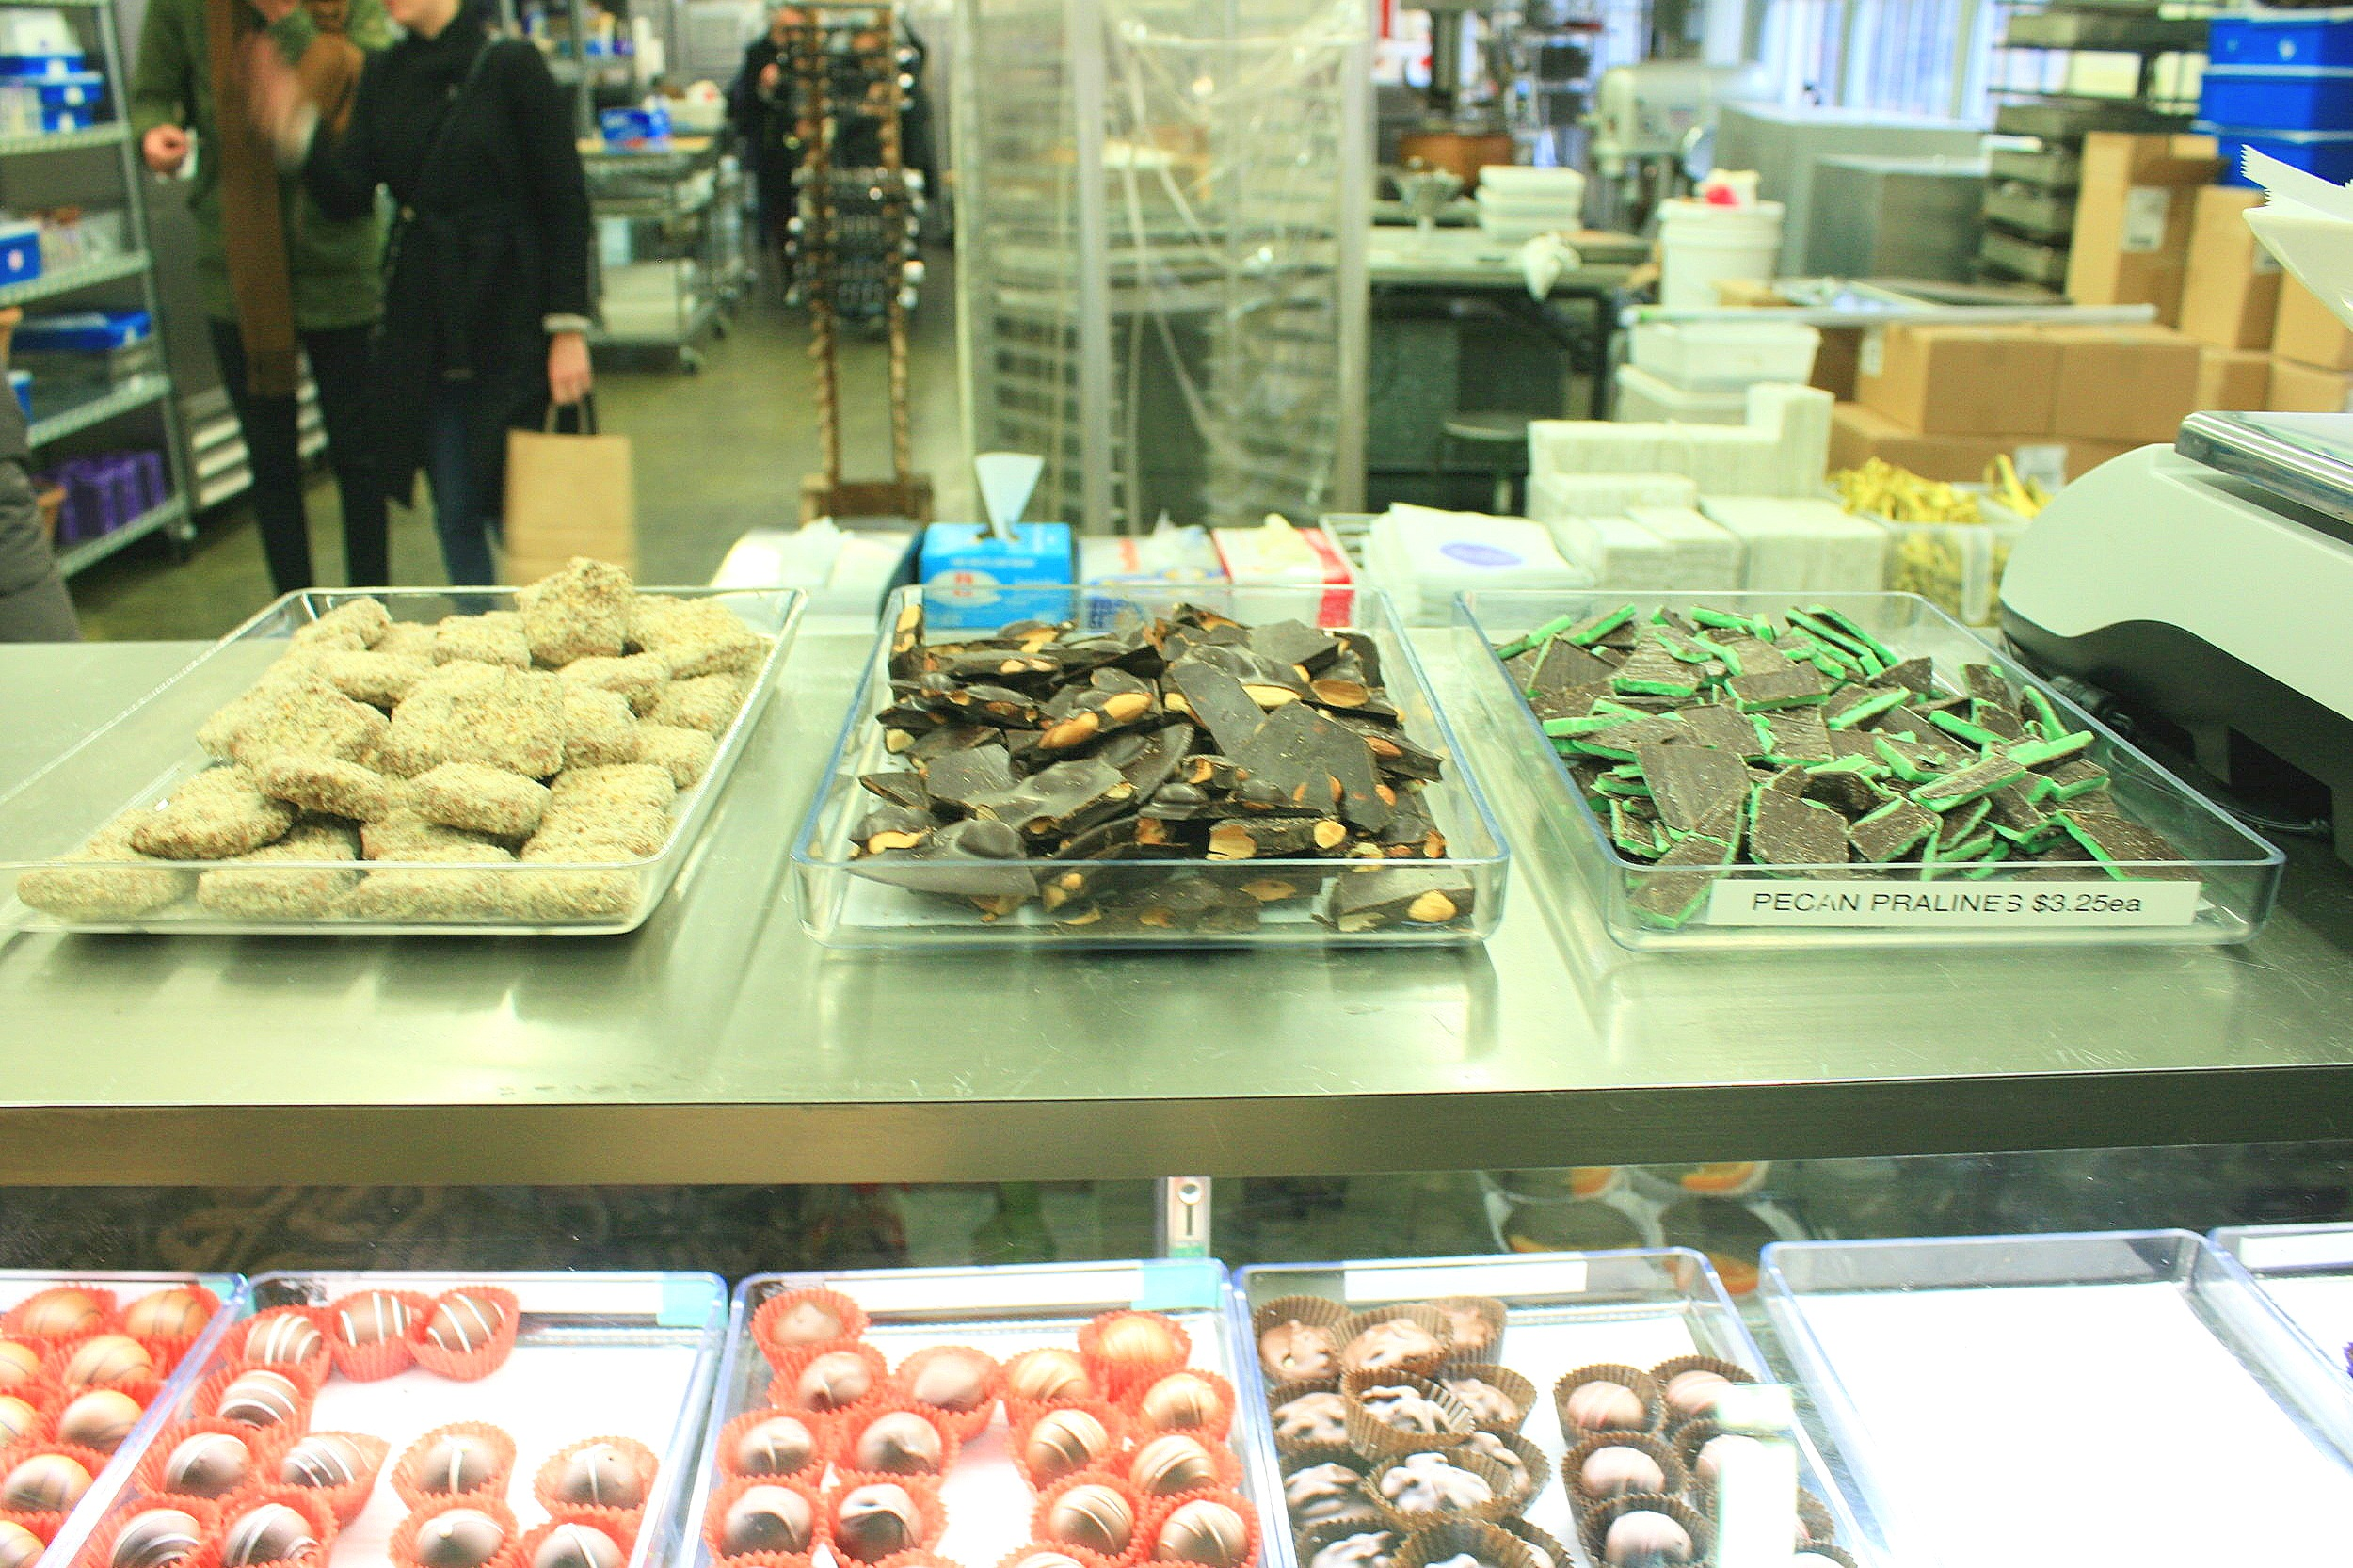 Li-Lac Chocolate Tour - With so many amazing samples!